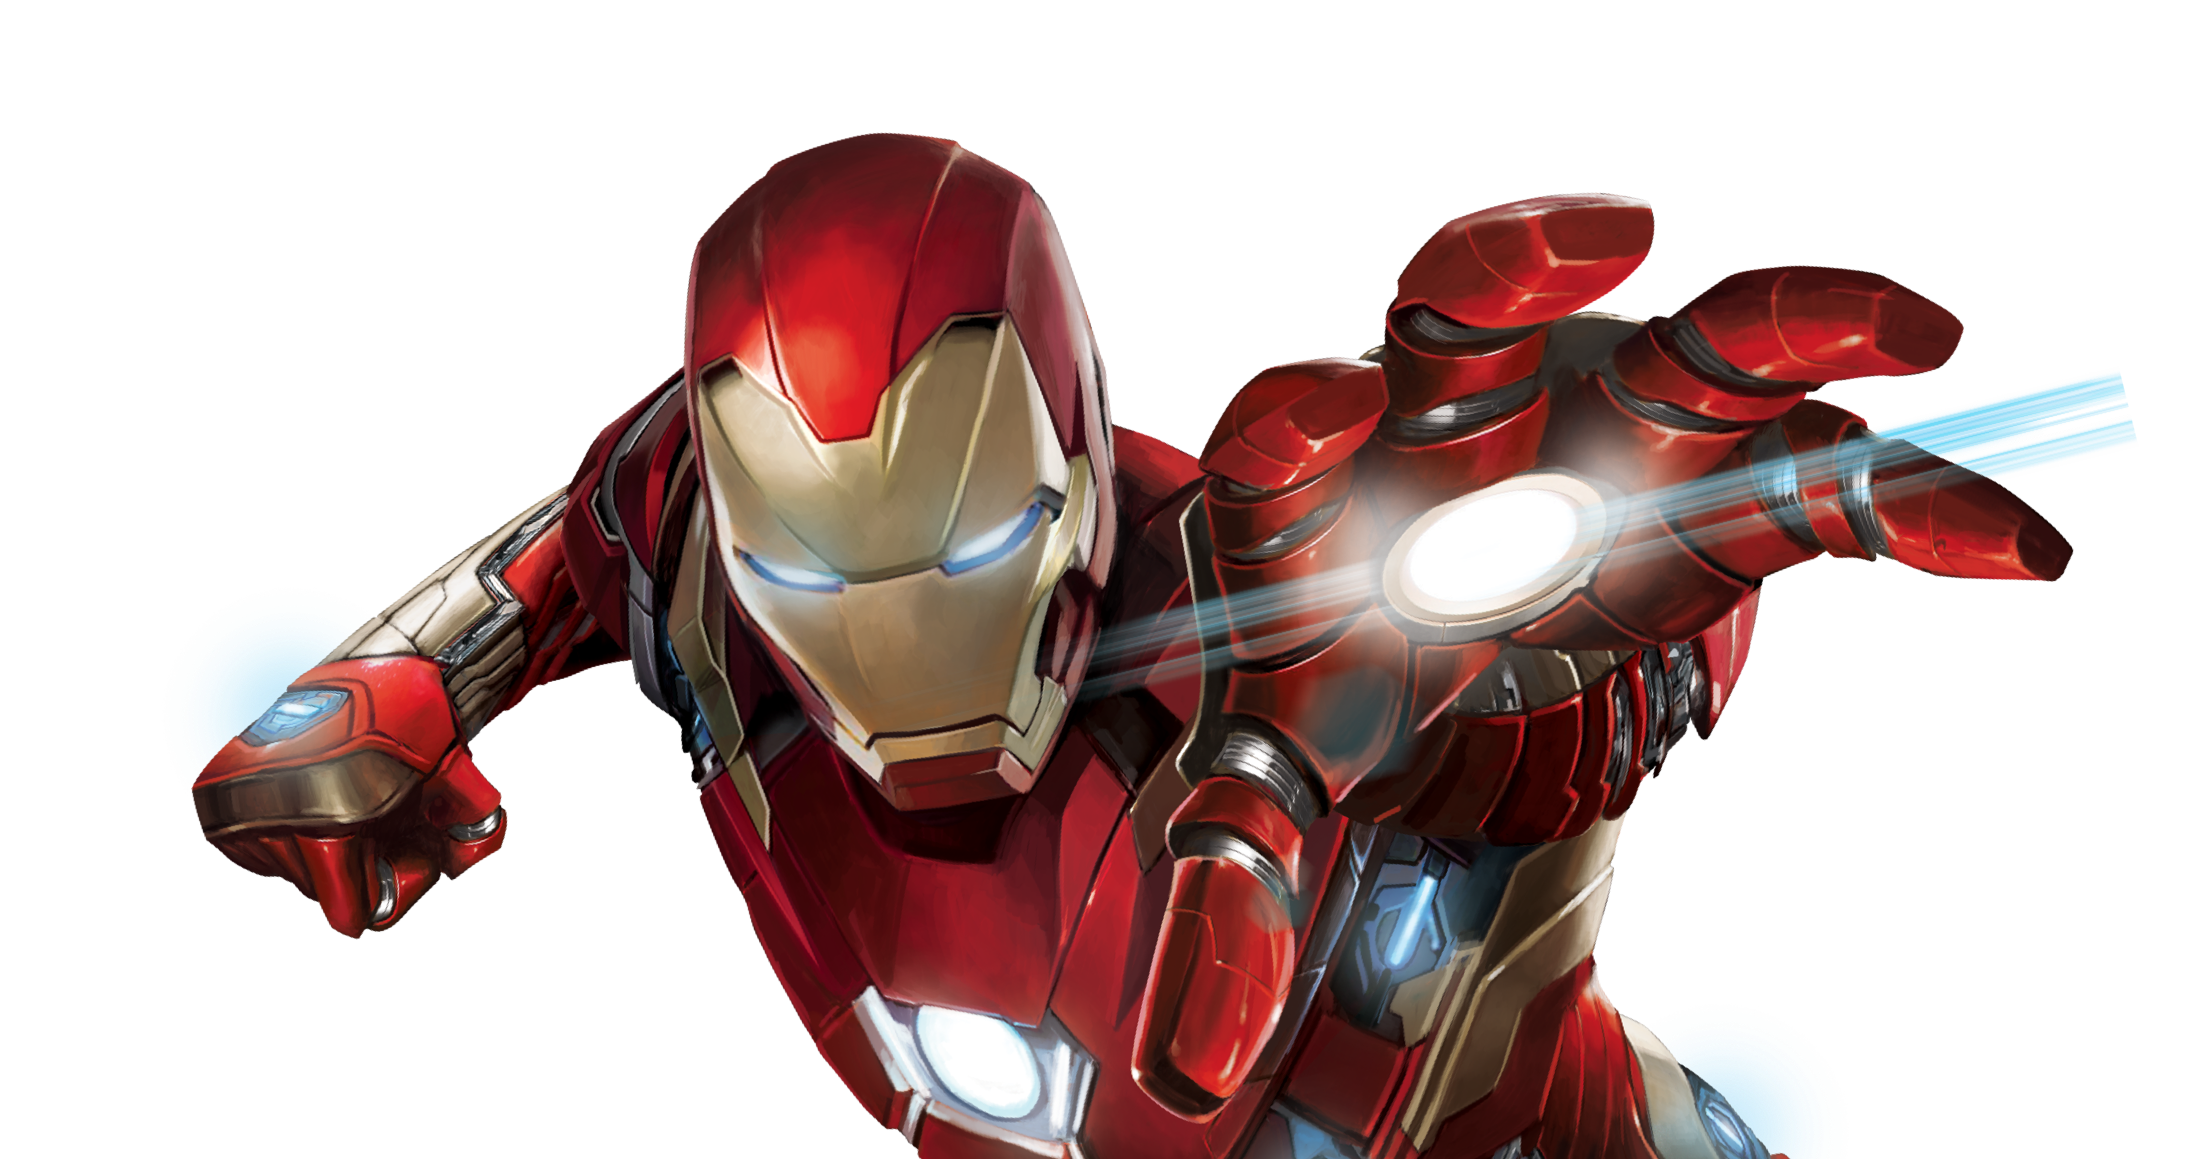 Avengers Assemble Wallpaper Hd Ironman Png Images Free Download